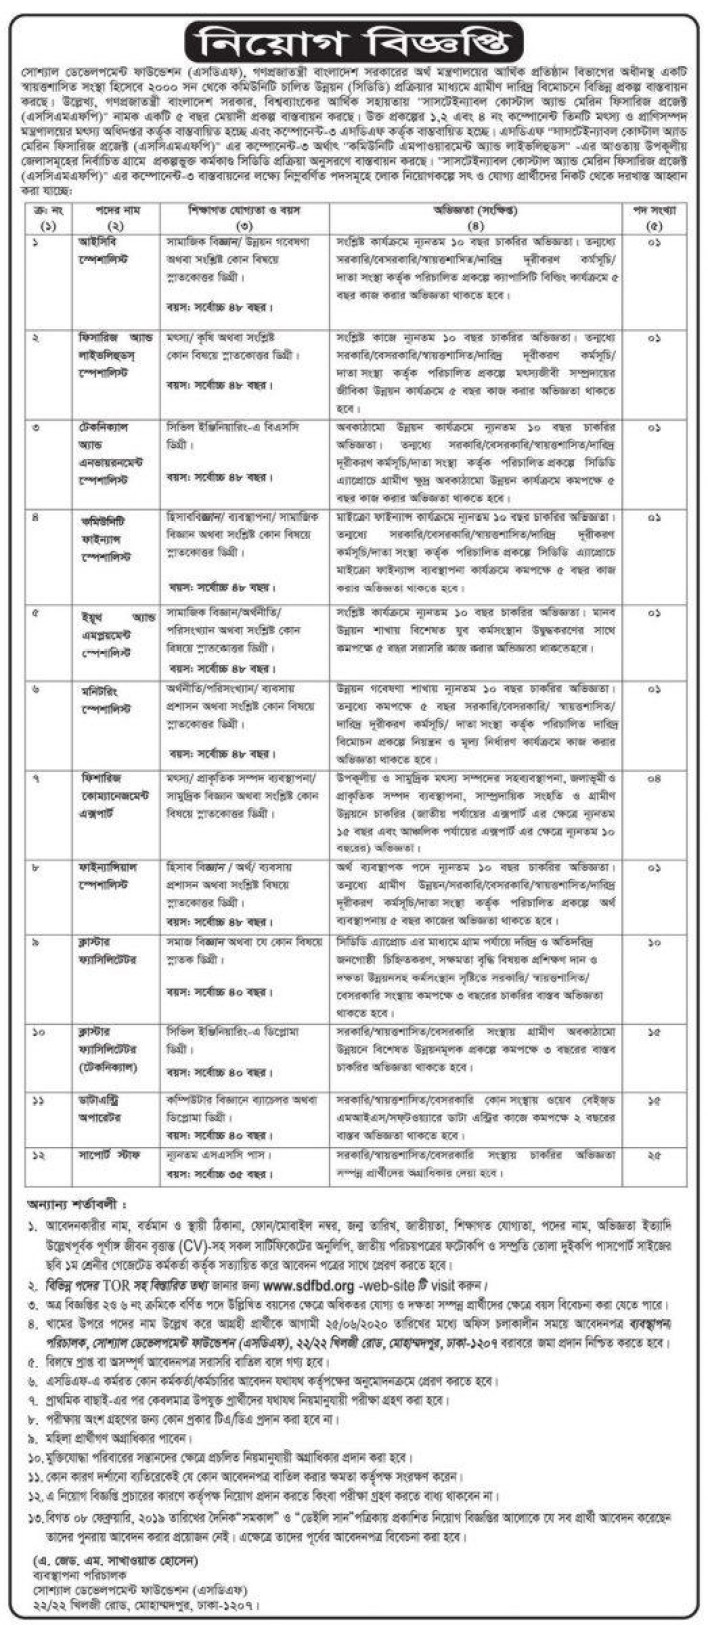 Ministry Of Finance Job Circular 2020